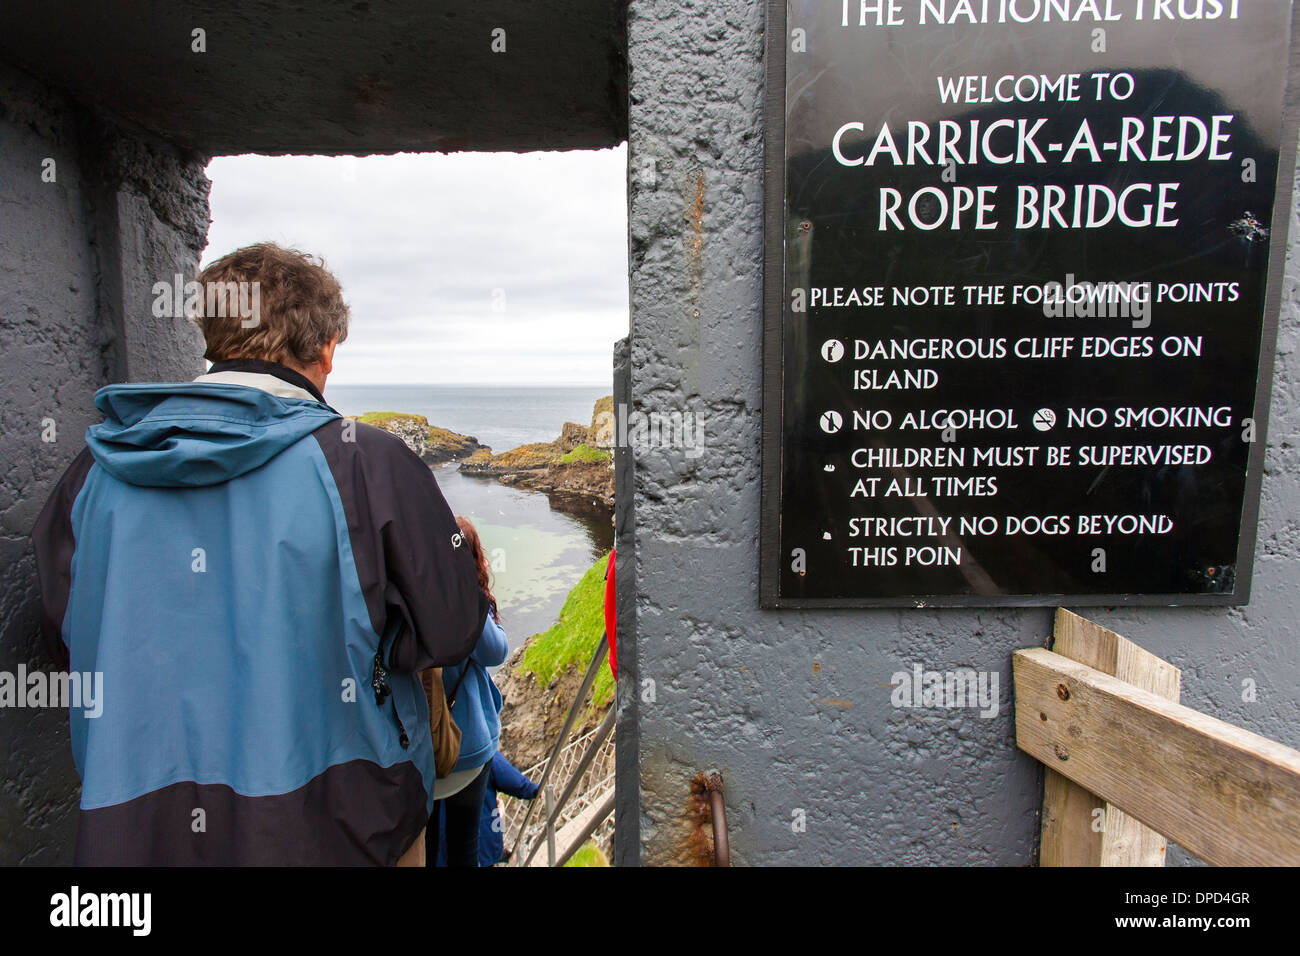 A male visitor walks into doorway entrance of the Carrick-a-Rede rope bridge on the Antrim coast of Northern Ireland. - Stock Image